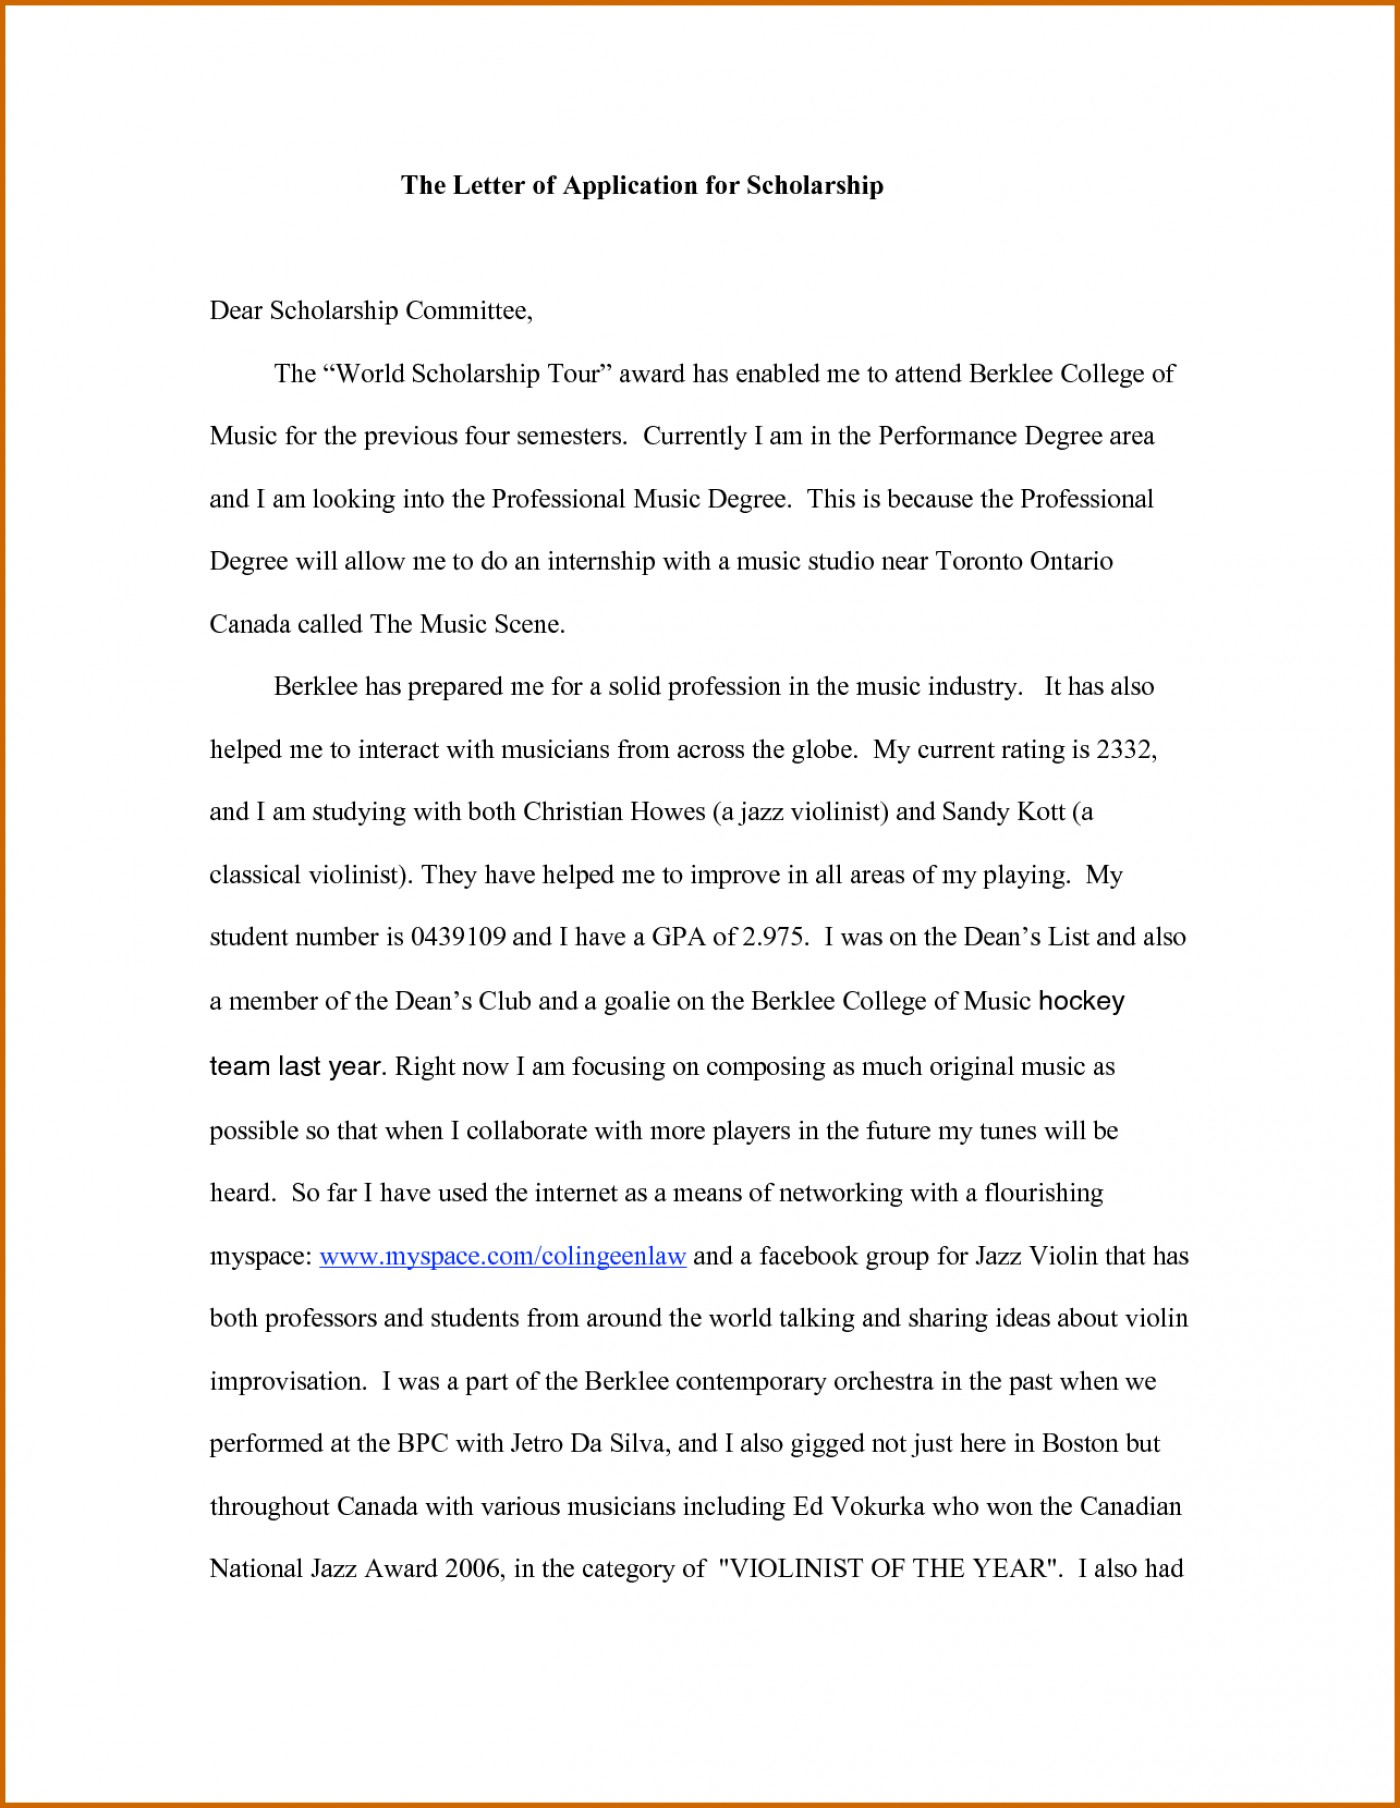 003 How To Write Application For Scholarship Sample Essays Essay Awful High School Seniors 500 Words 1400